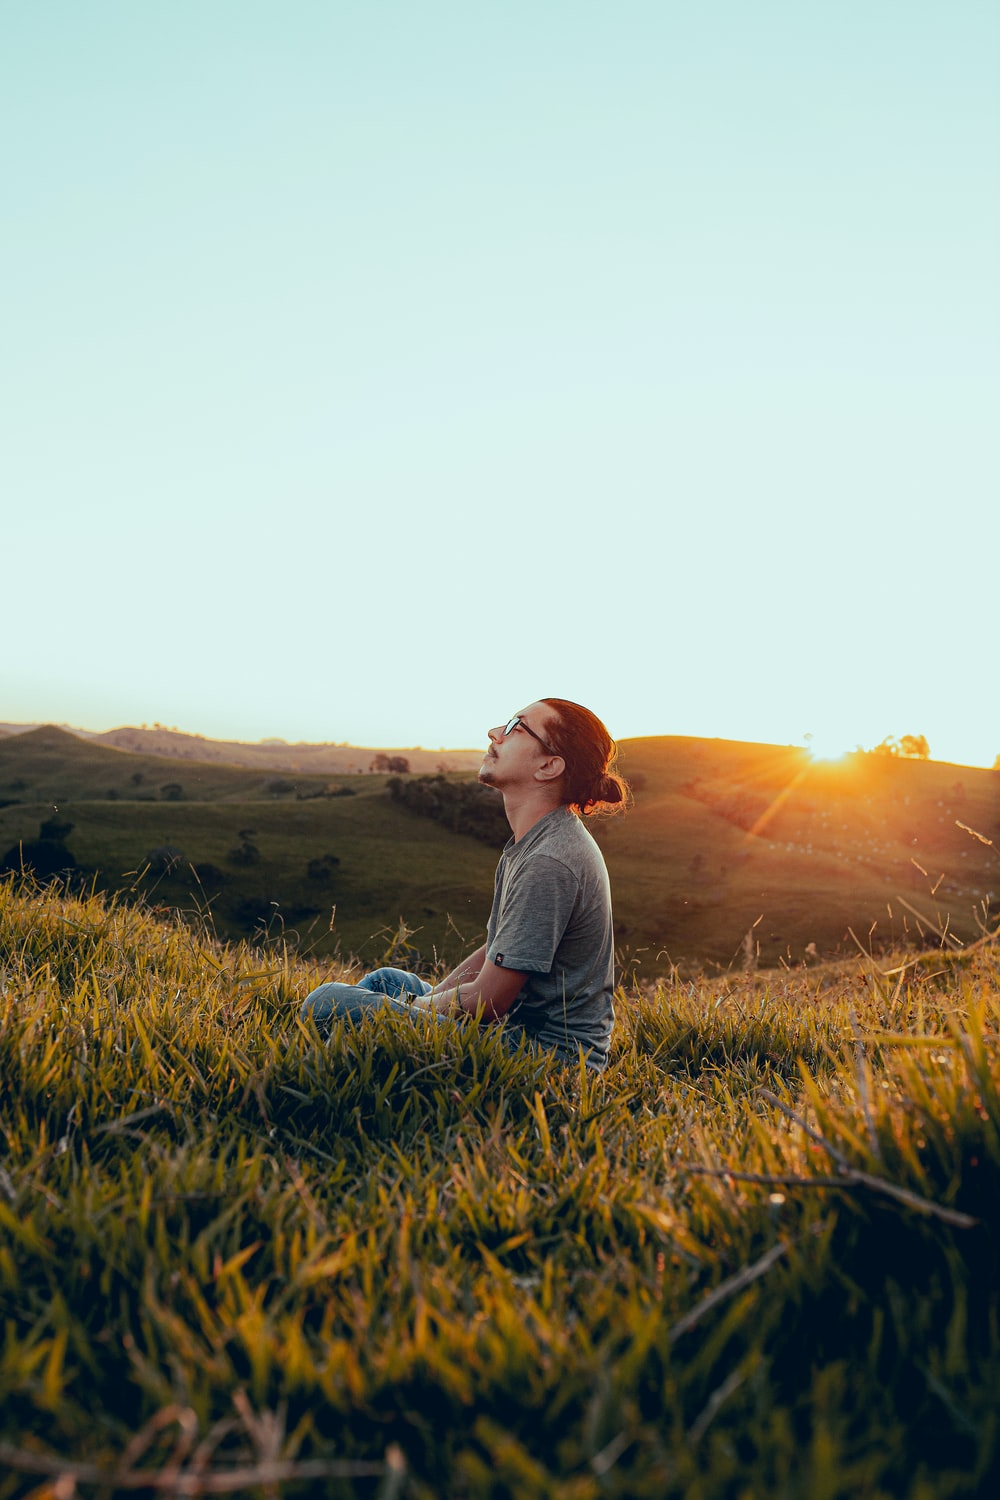 man in white shirt sitting on green grass field during sunset